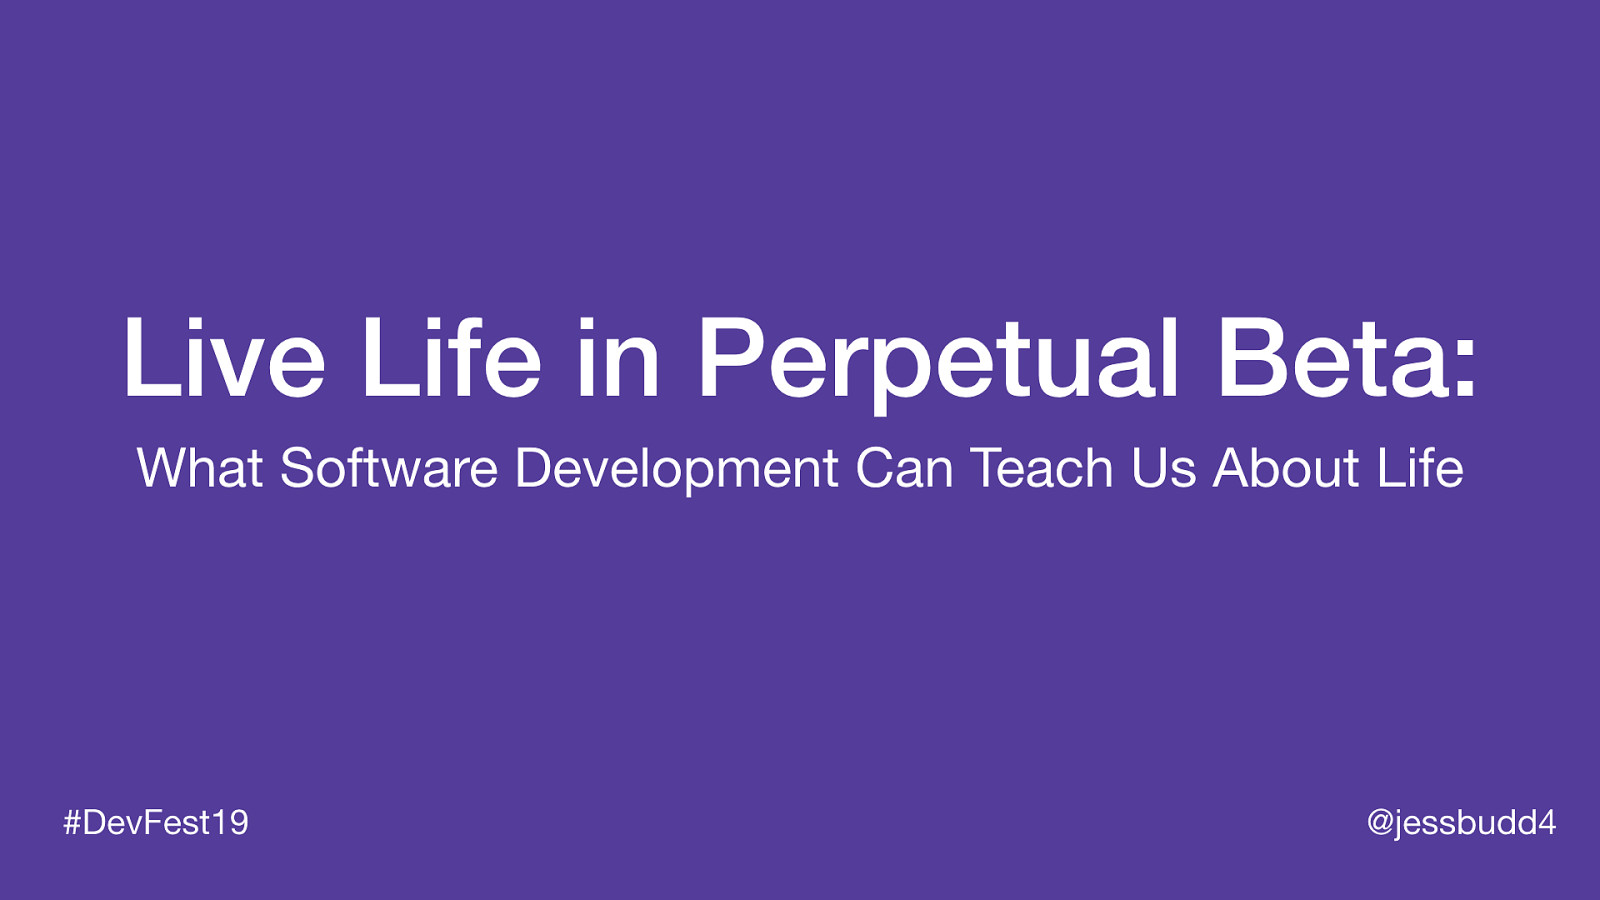 Live Life in Perpetual Beta: What software development can teach us about life